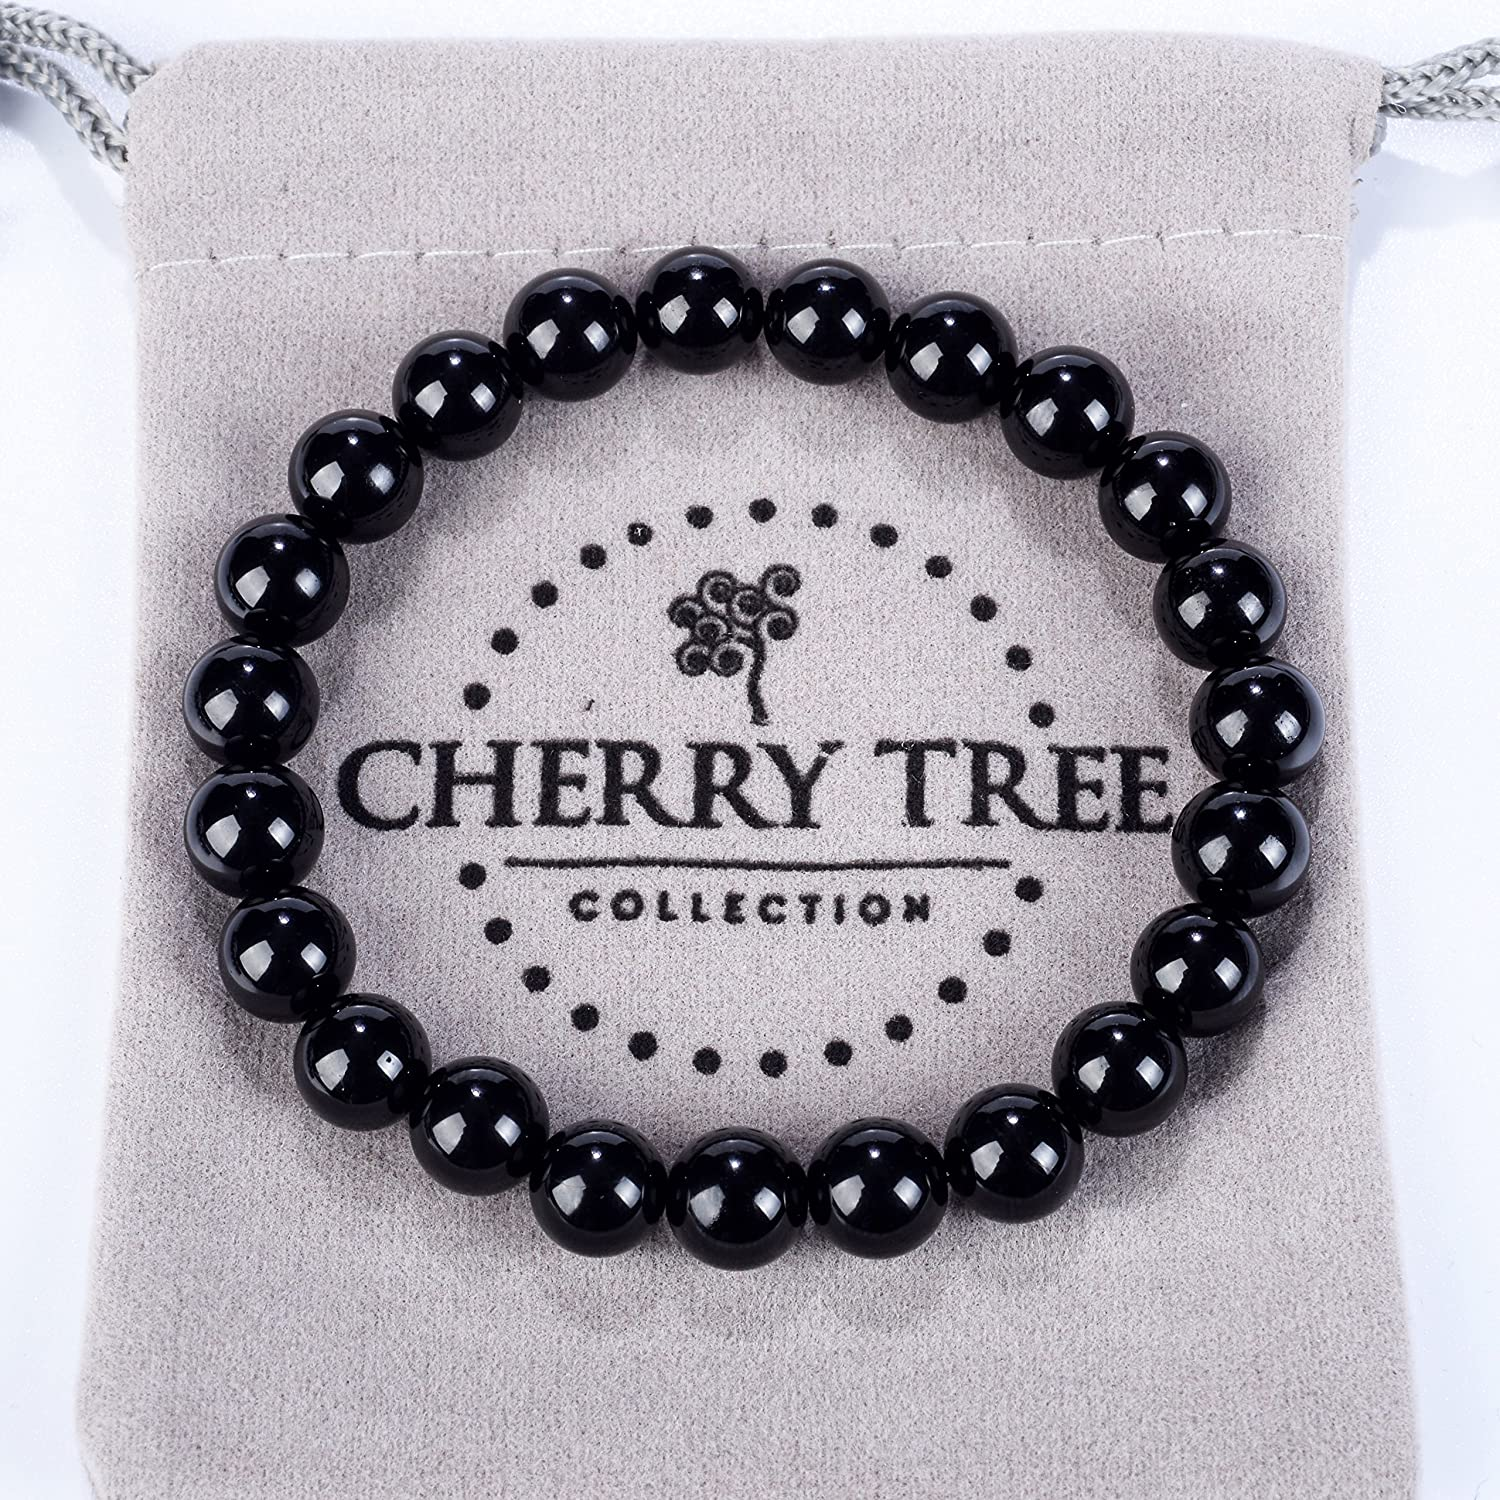 Cherry Tree Collection Medium Small Large Sizes 8mm Round Beads Gemstone Beaded Stretch Bracelet